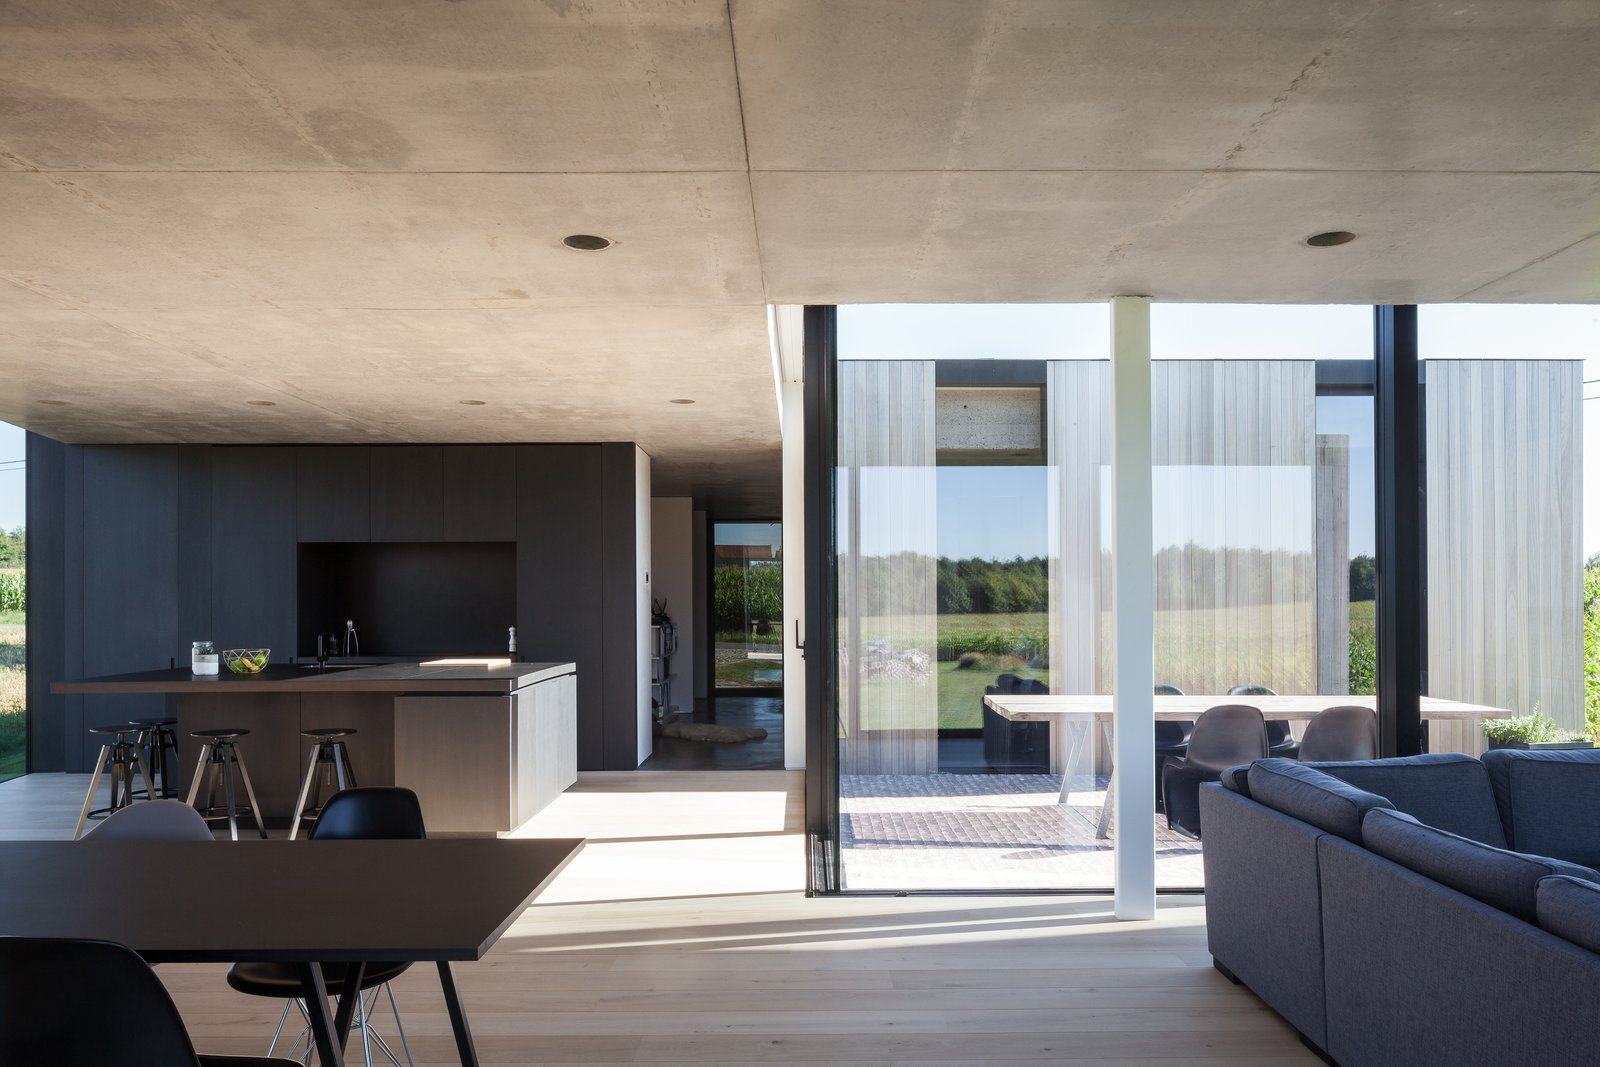 Photo 11 of 14 in Defying traditionalism: concrete bungalow inserted in a rural Belgian landscape